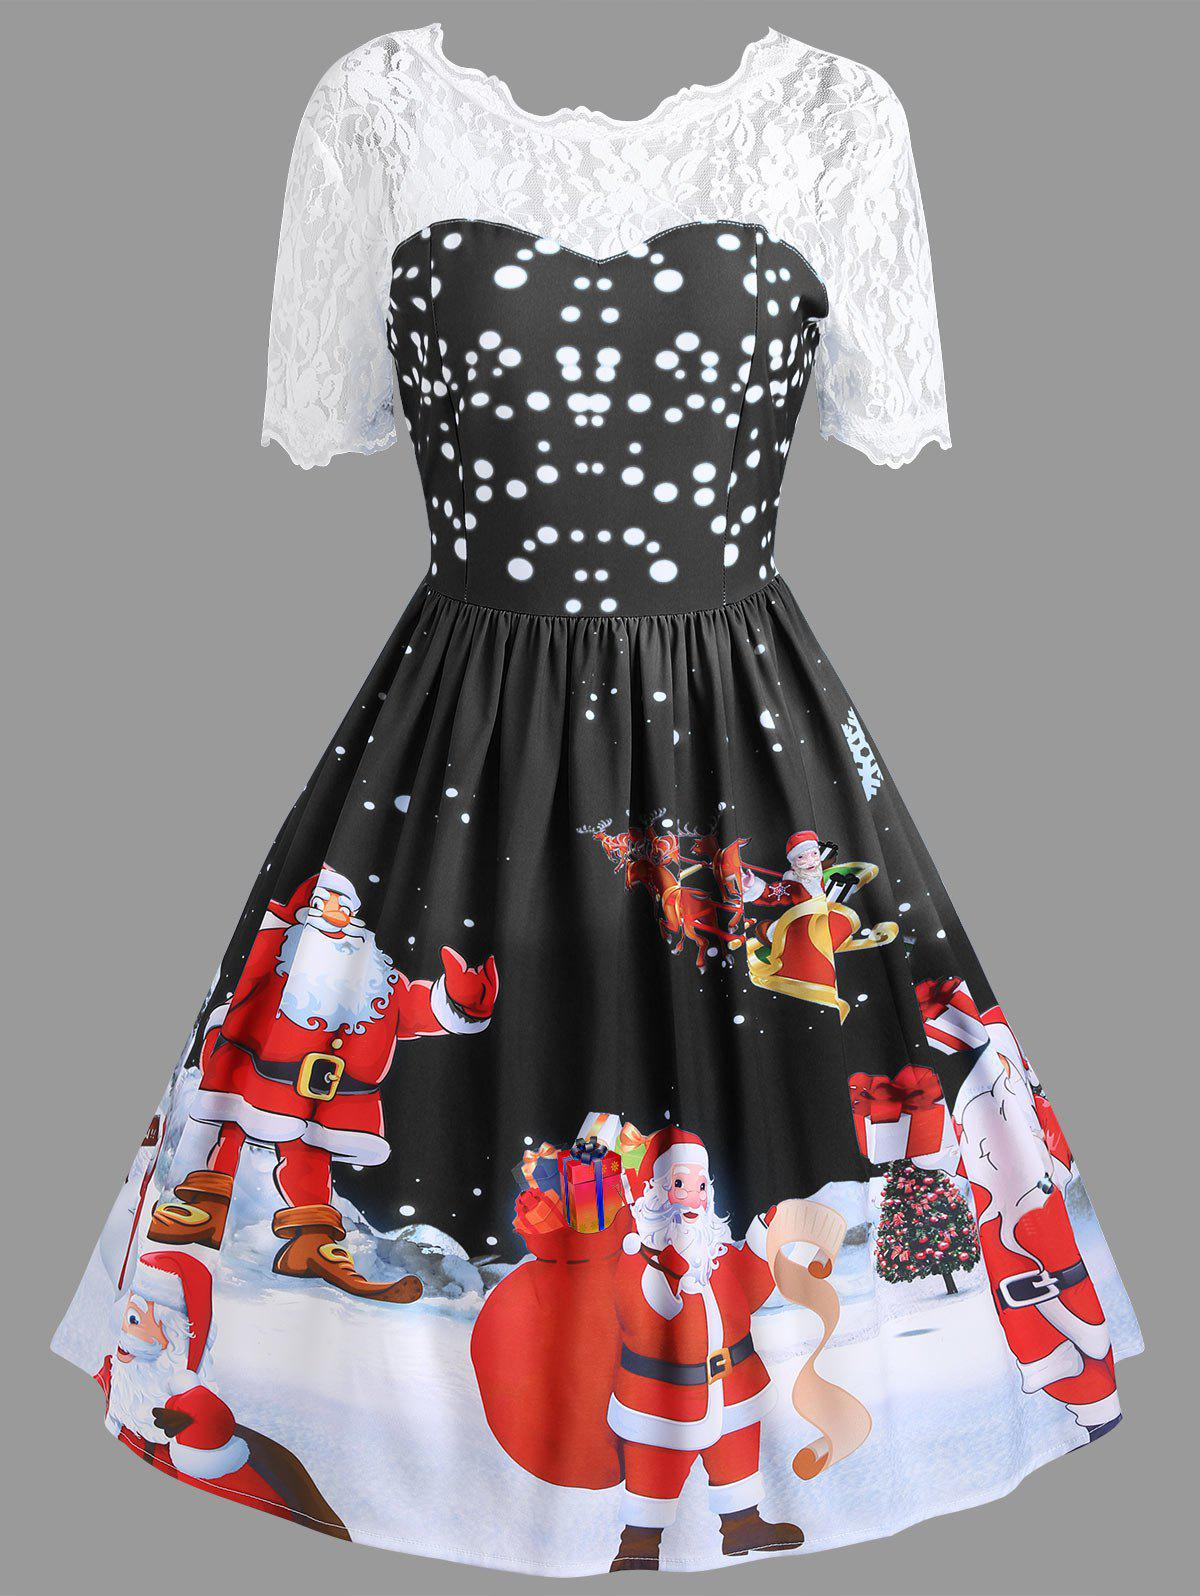 Vintage Lace Insert Santa Claus Print Christmas DressWOMEN<br><br>Size: XL; Color: BLACK; Style: Vintage; Material: Polyester,Spandex; Silhouette: A-Line; Dresses Length: Knee-Length; Neckline: Round Collar; Sleeve Length: Short Sleeves; Pattern Type: Patchwork,Print; With Belt: No; Season: Fall,Spring; Weight: 0.3500kg; Package Contents: 1 x Dress;